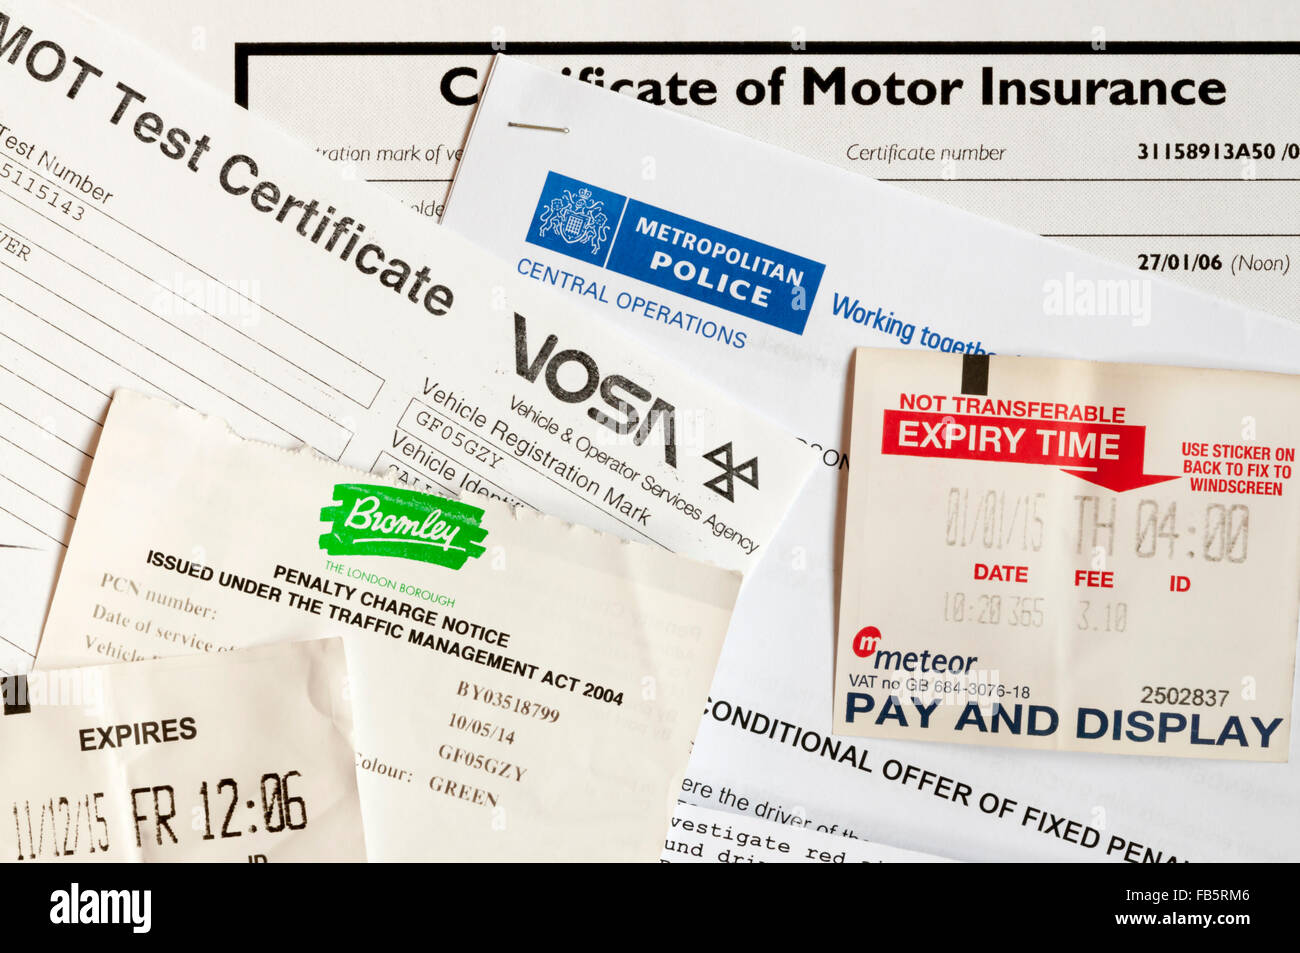 The costs and expenses of motoring, driving and car ownership. - Stock Image